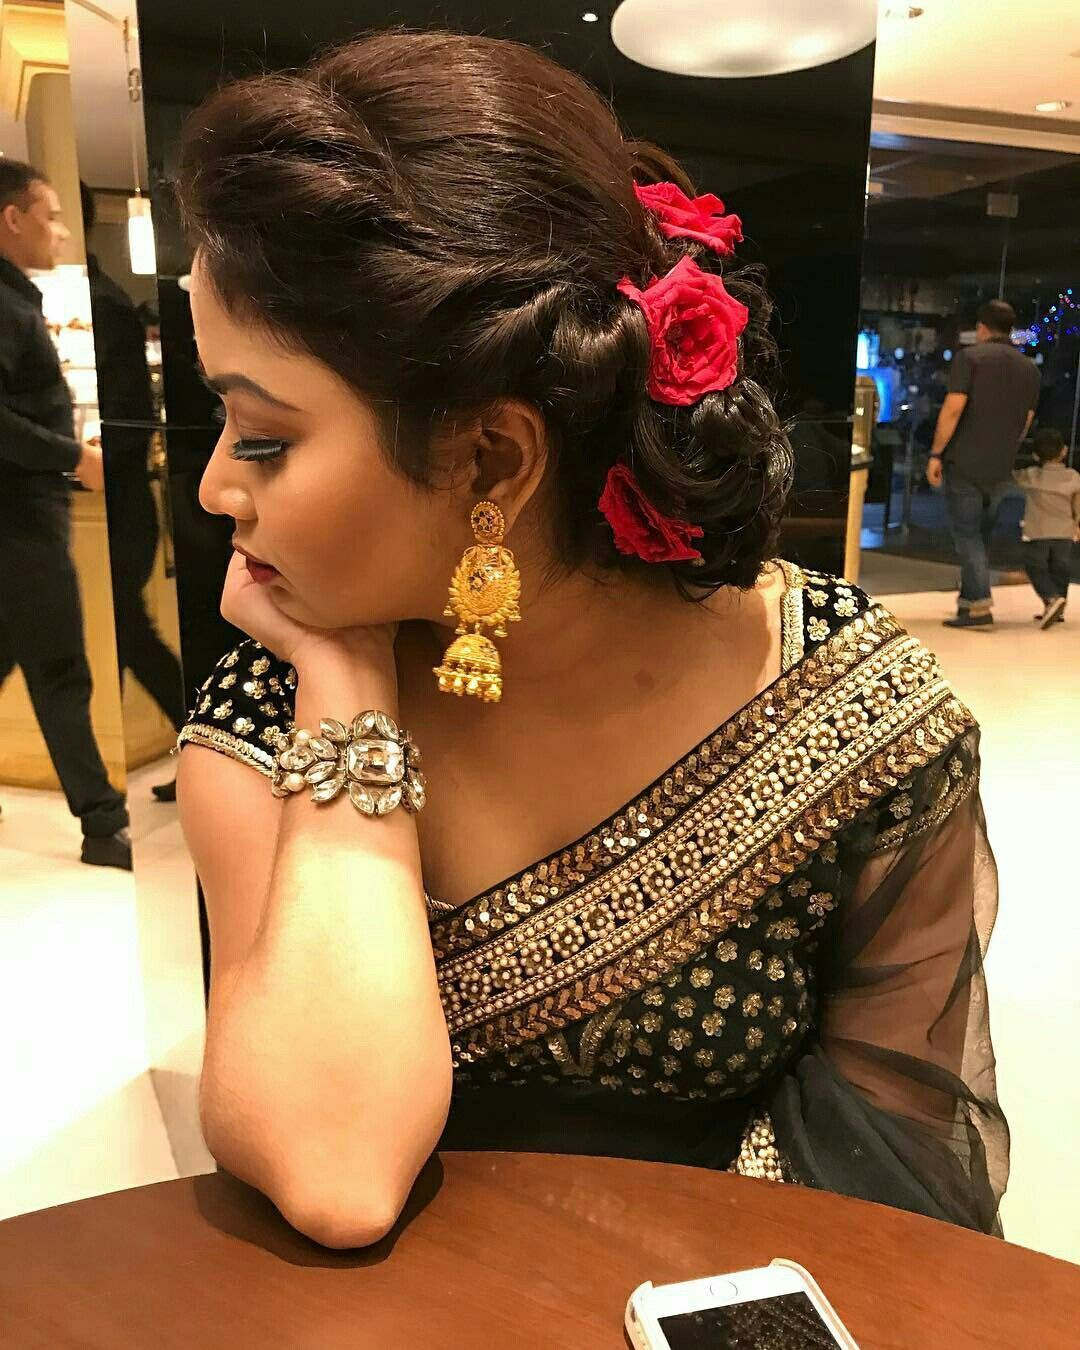 Indian Wedding Hairstyles For Thin Hair In 2020 Indian Wedding Hairstyles Bridal Hair Buns Engagement Hairstyles